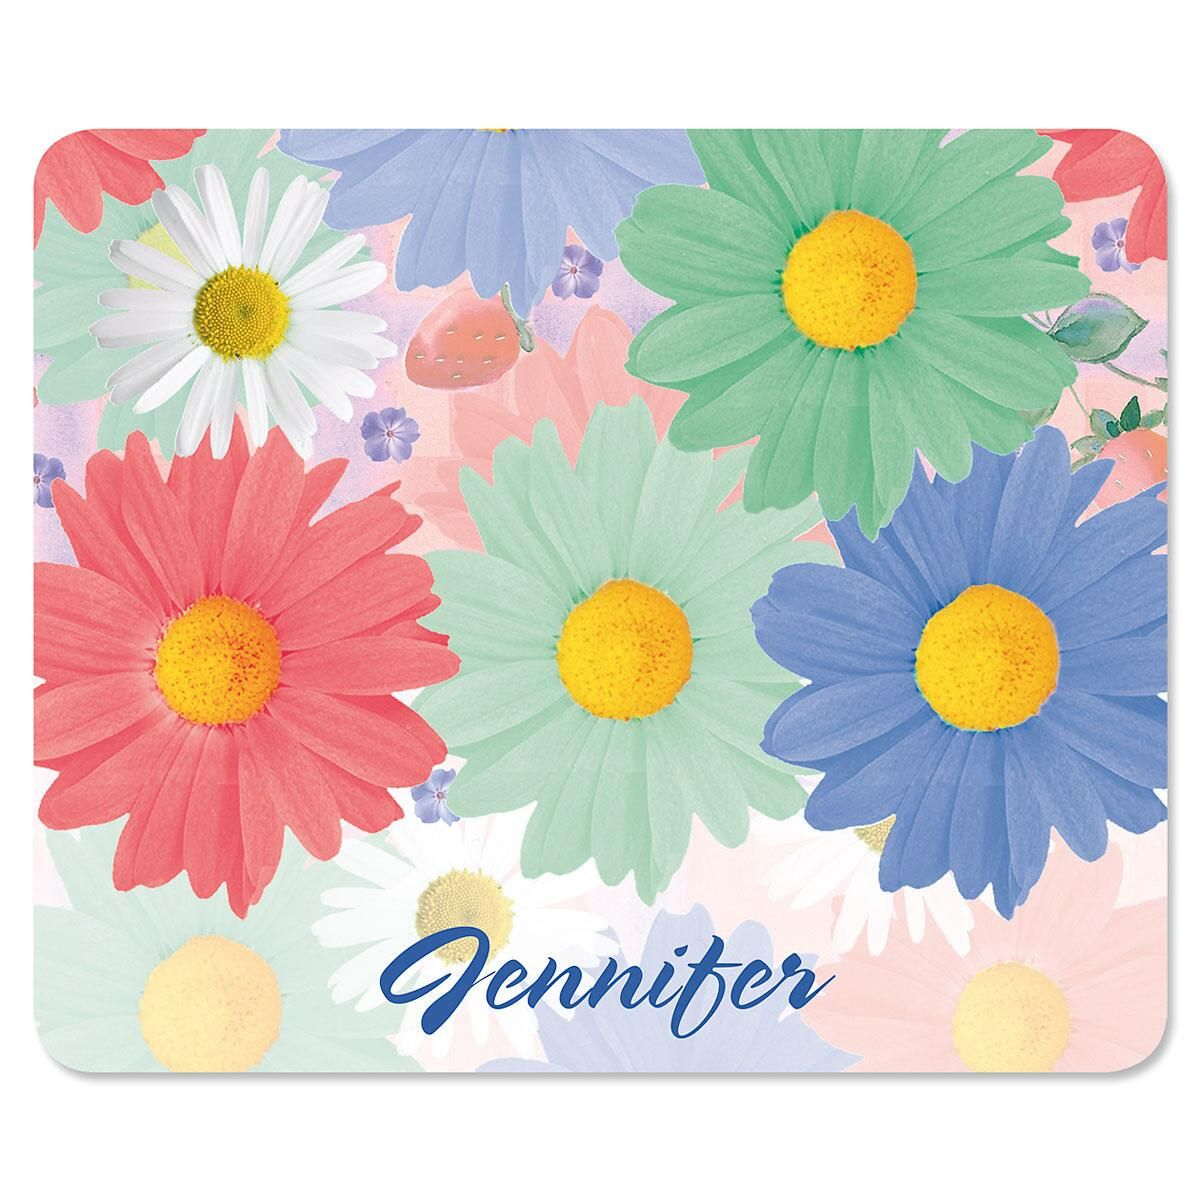 Gerber Daisies  Personalized Mousepad